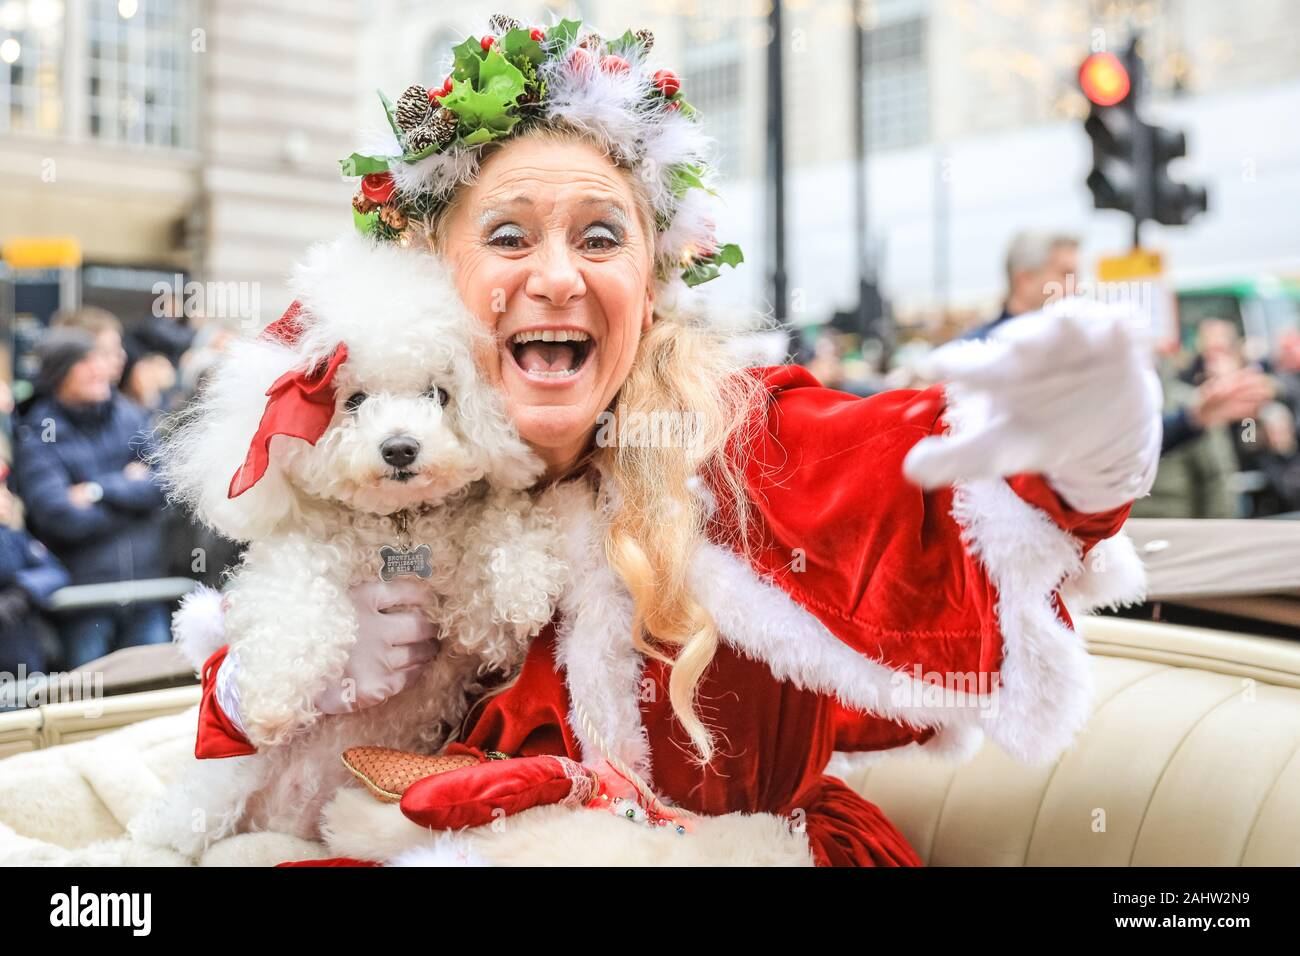 Central Christmas Parade 2020 Central London, 1st Jan 2020. Miss Christmas, Donna Maria, is a